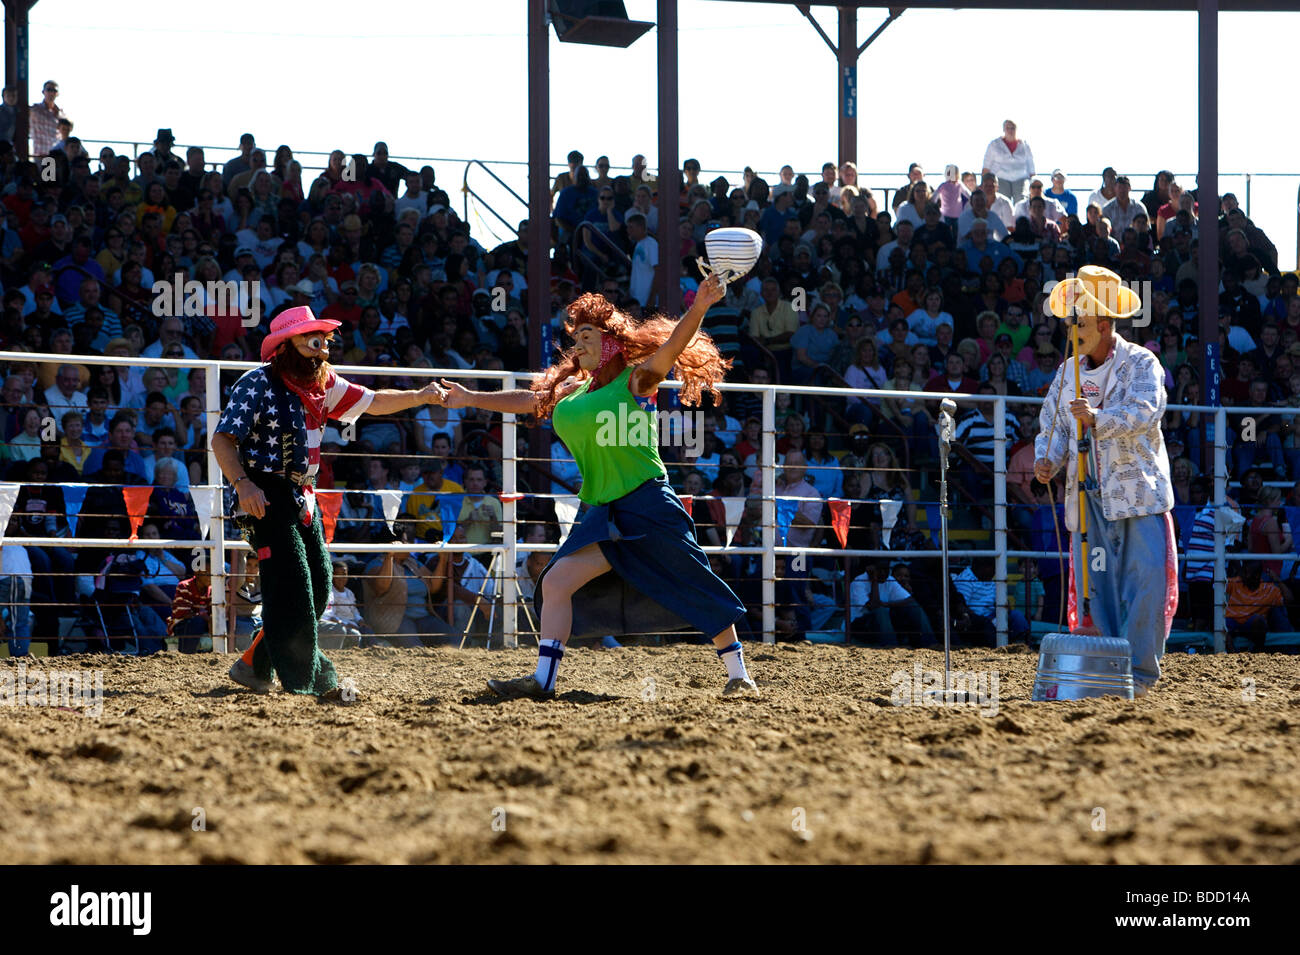 Louisiana State Penitentiary. Angola Prison Rodeo. PHOTO: GERRIT DE HEUS - Stock Image